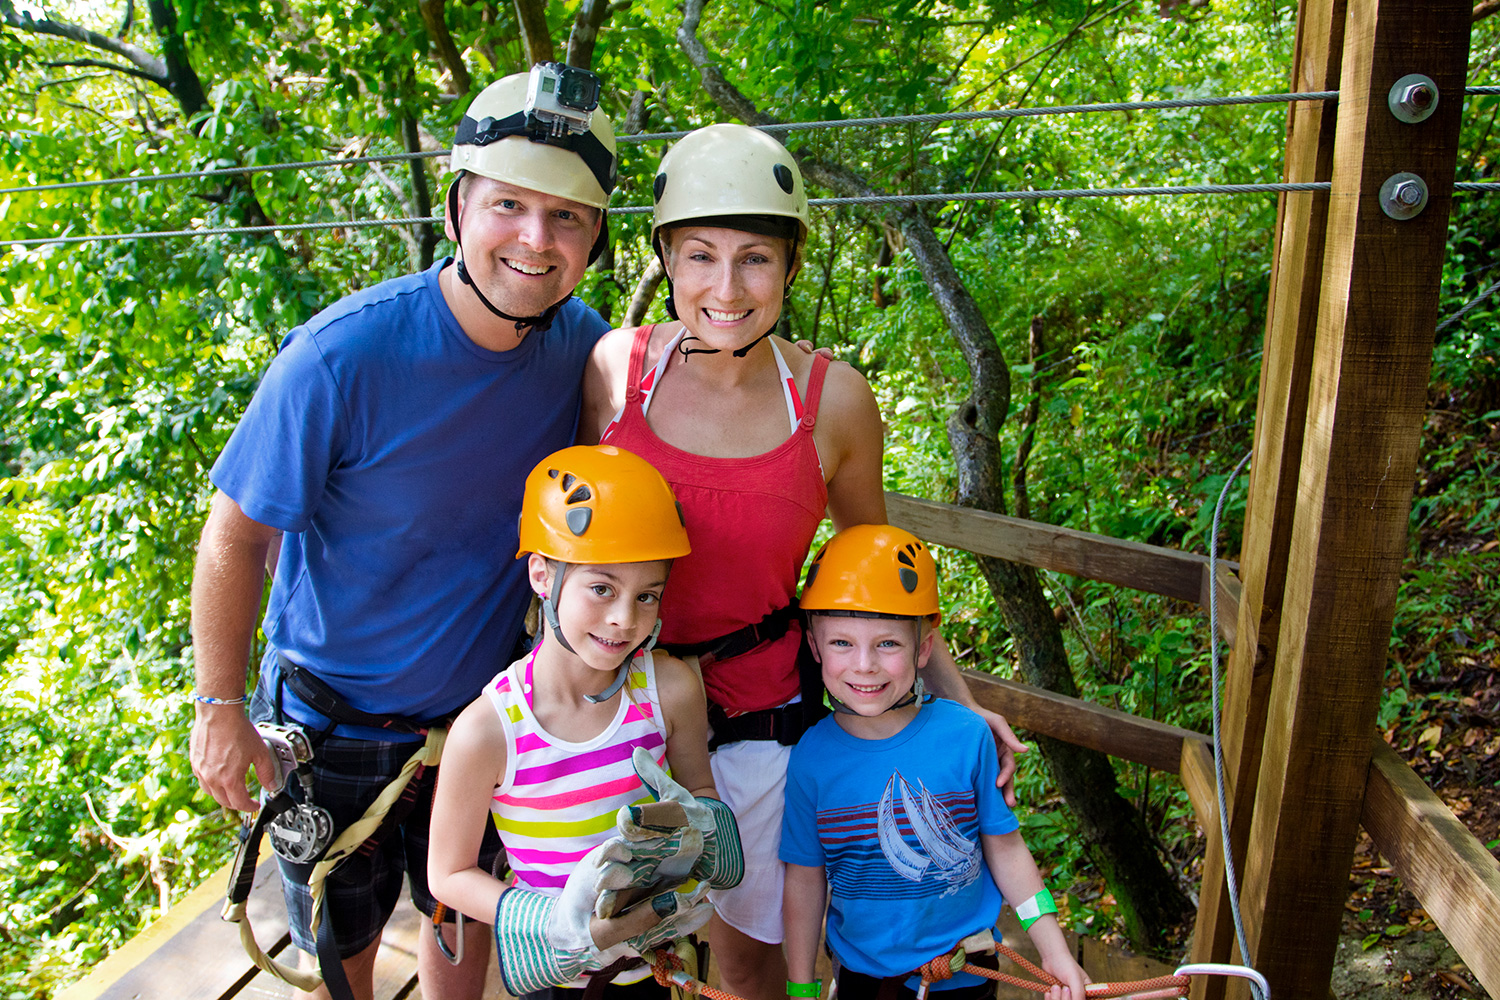 Lake of the Ozark events - Thrills